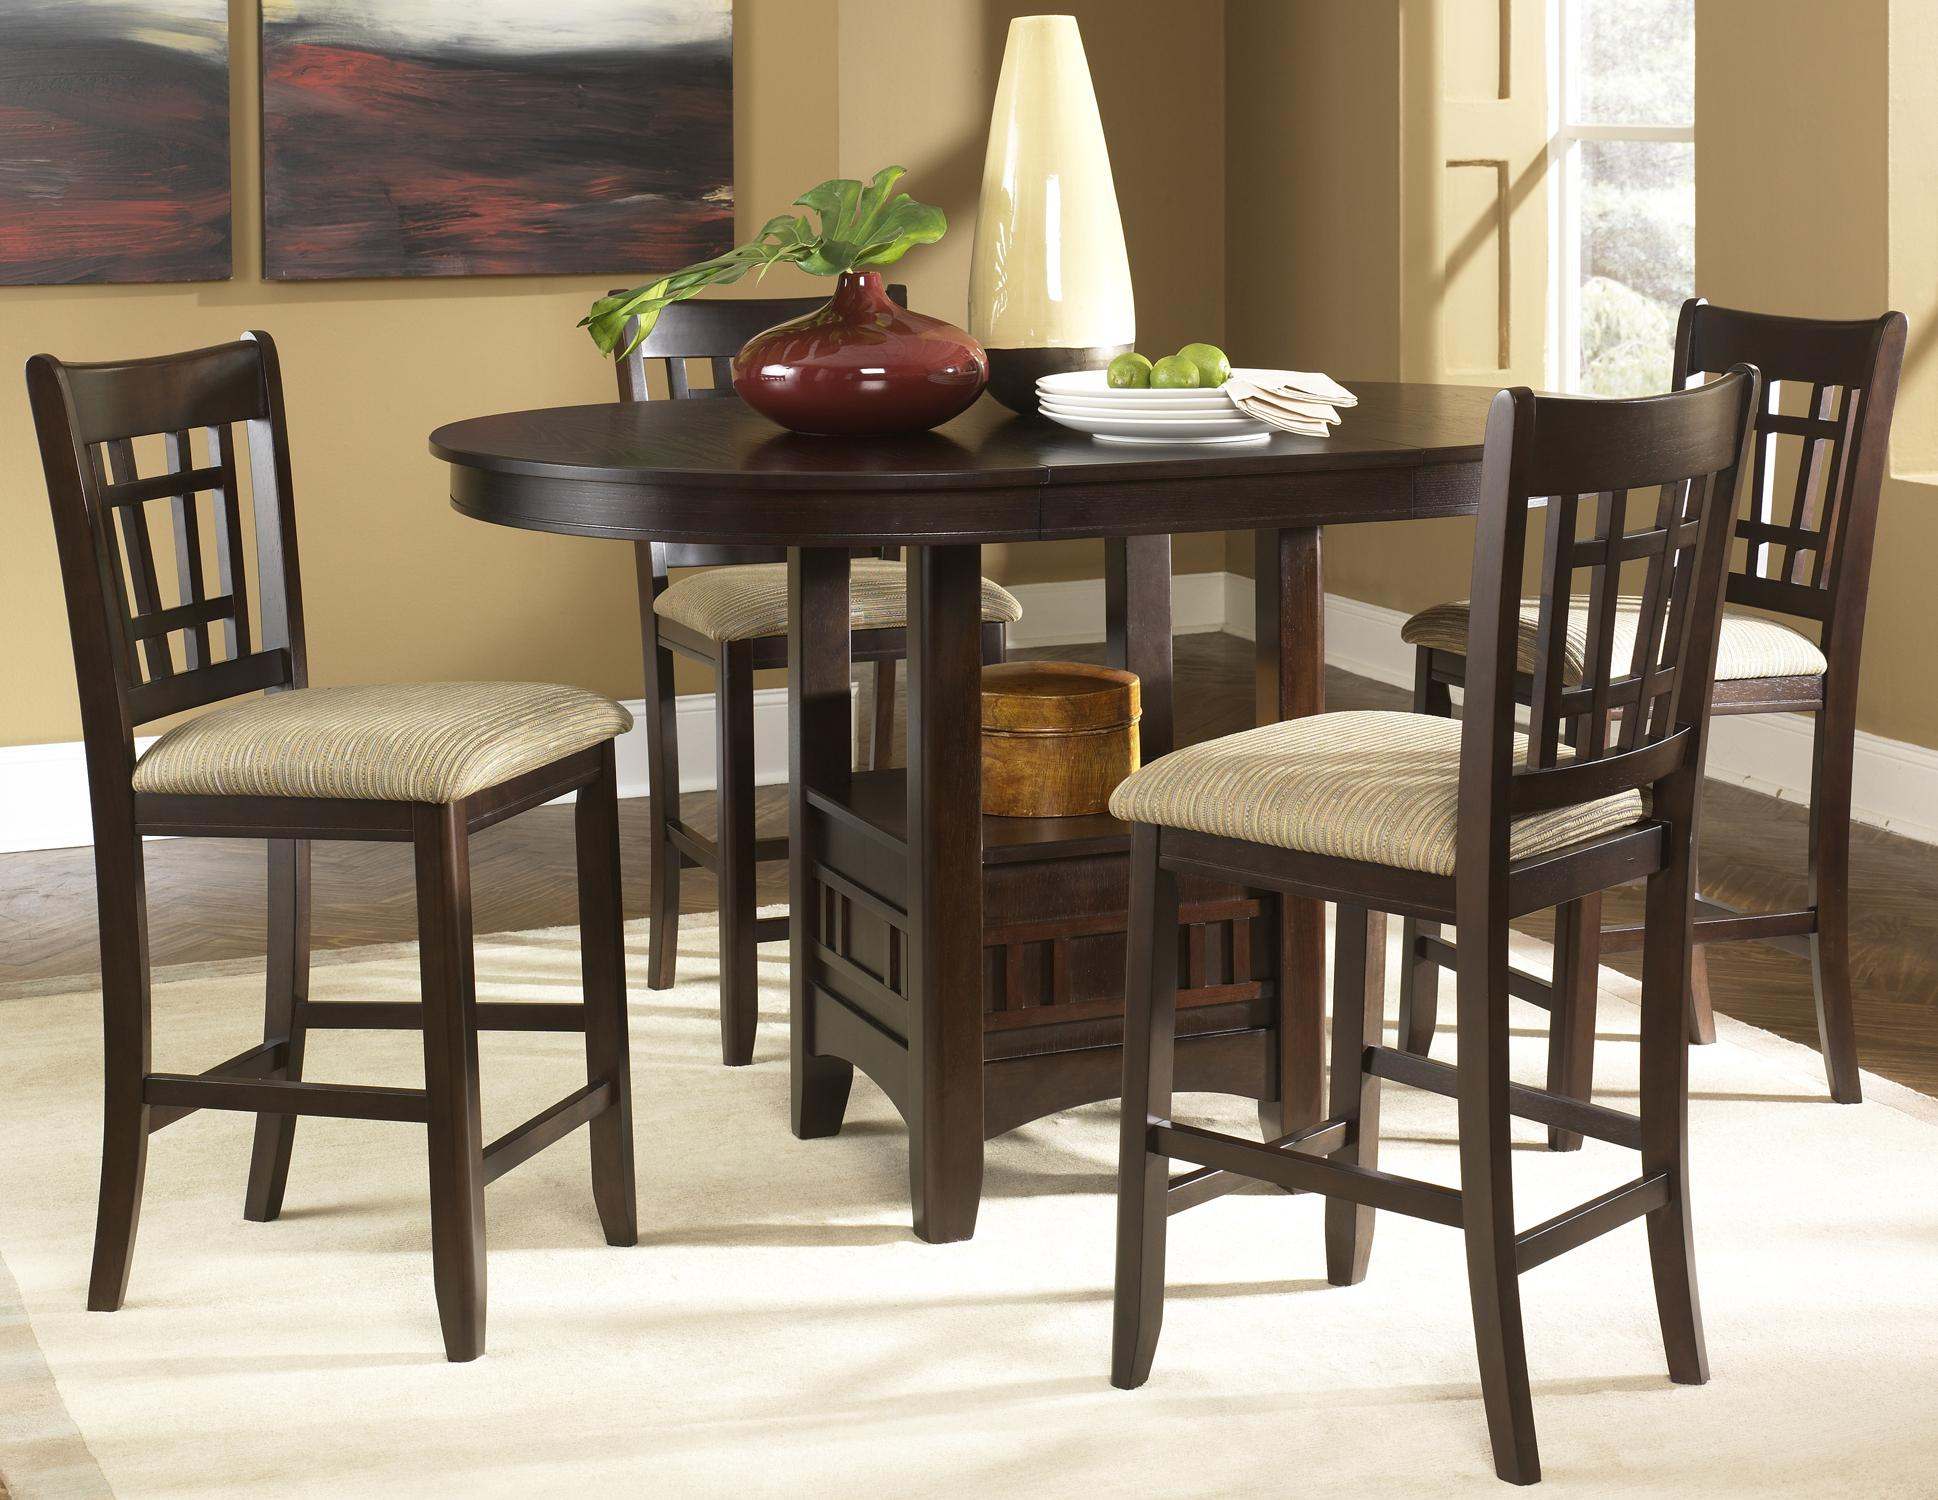 Choosing the right bar table and chairs